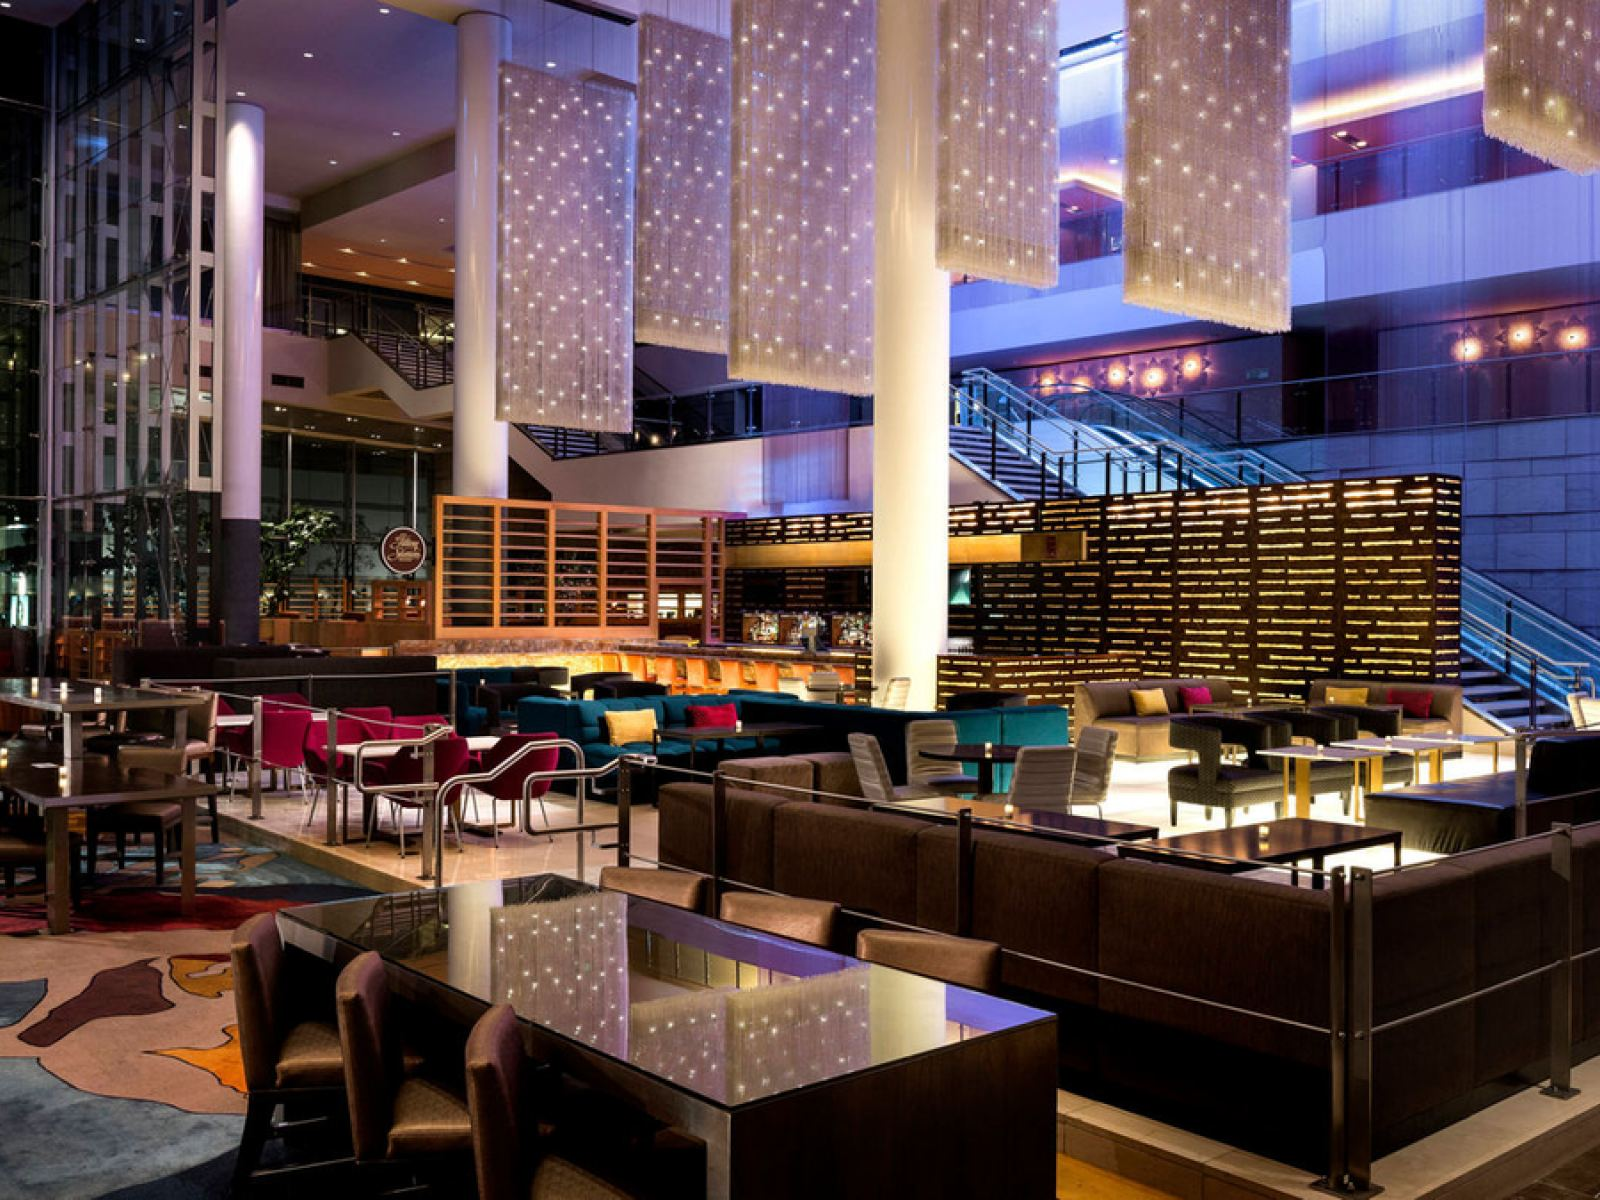 Main image for article titled Living the Pop Life at JW Marriott L.A. LIVE